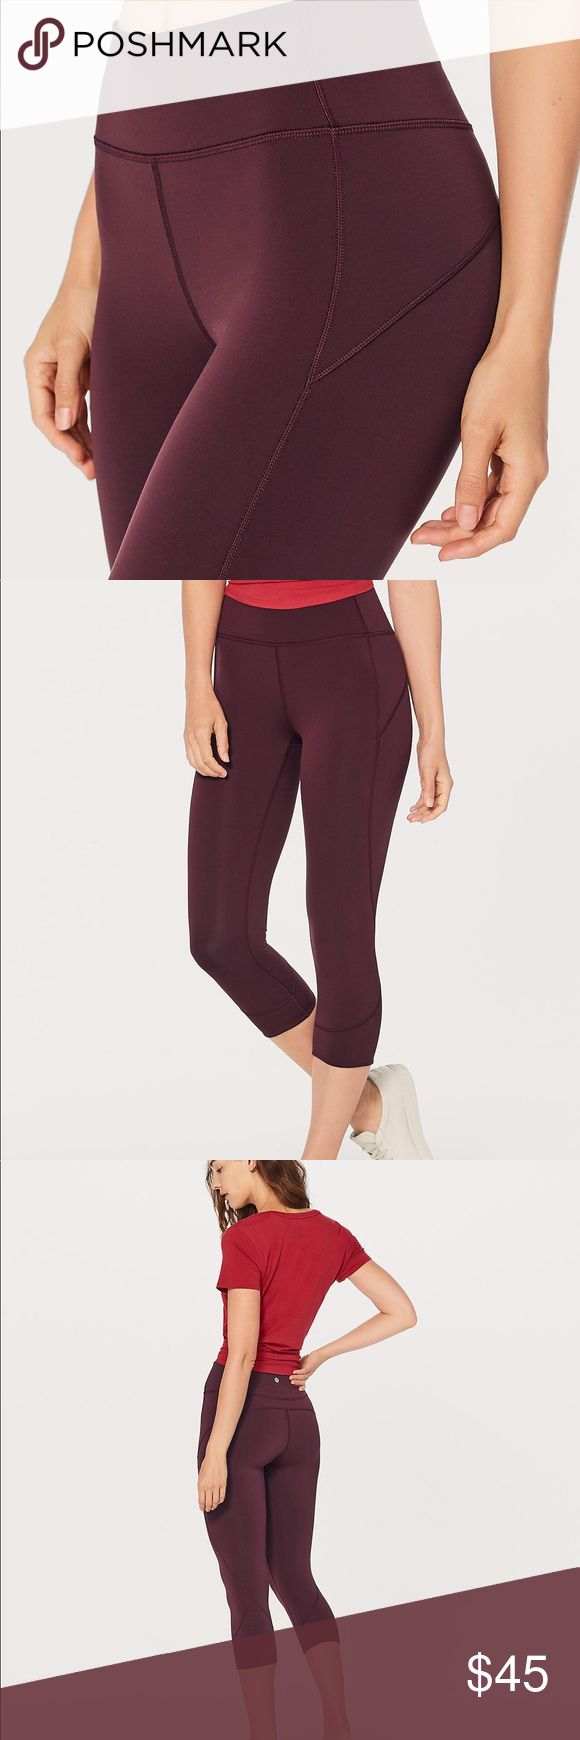 NWT 🍋 LuluLemon 🍋 In Movement Crop in Garnet ❤️ Meet your new studio workout companion: a sleek crop that fits like a second skin. Stretchy fabric wicks sweat in a flash and dries quickly, so you can go straight from Pilates to indoor cycling. Everlux fabric is four-way stretch, sweat-wicking, feels cool to the touch, and dries so fast it's like magic. Added Lycra fiber for stretch and shape retention. Hidden waistband pocket to stash your phone. High rise, hugged sensation.   BRAND NEW…